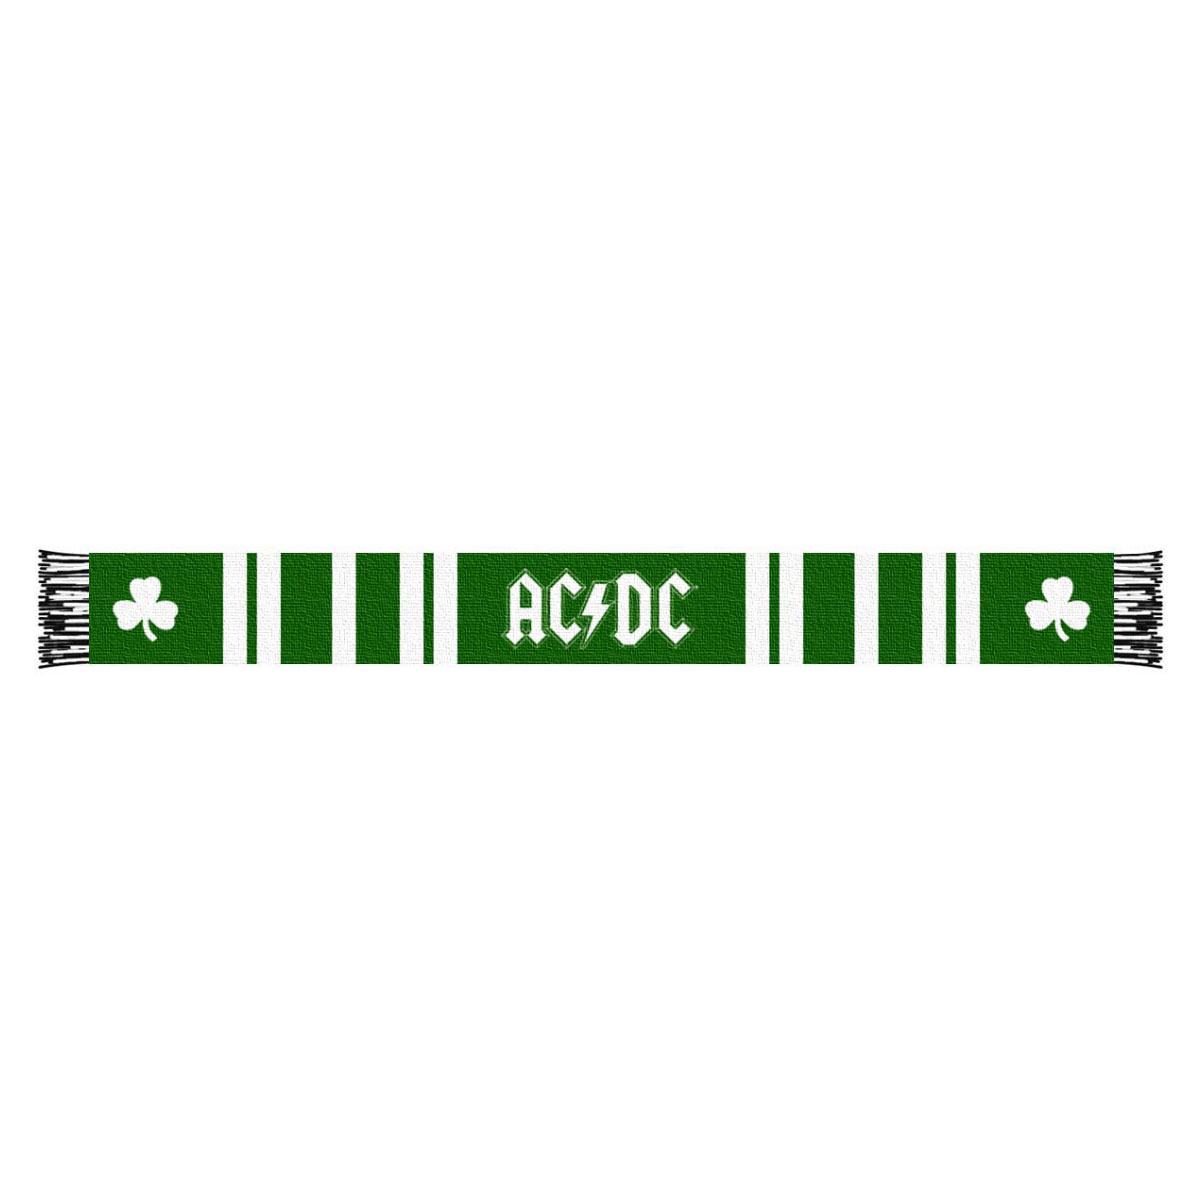 AC/DC Shamrock Scarf Green and White Stripes